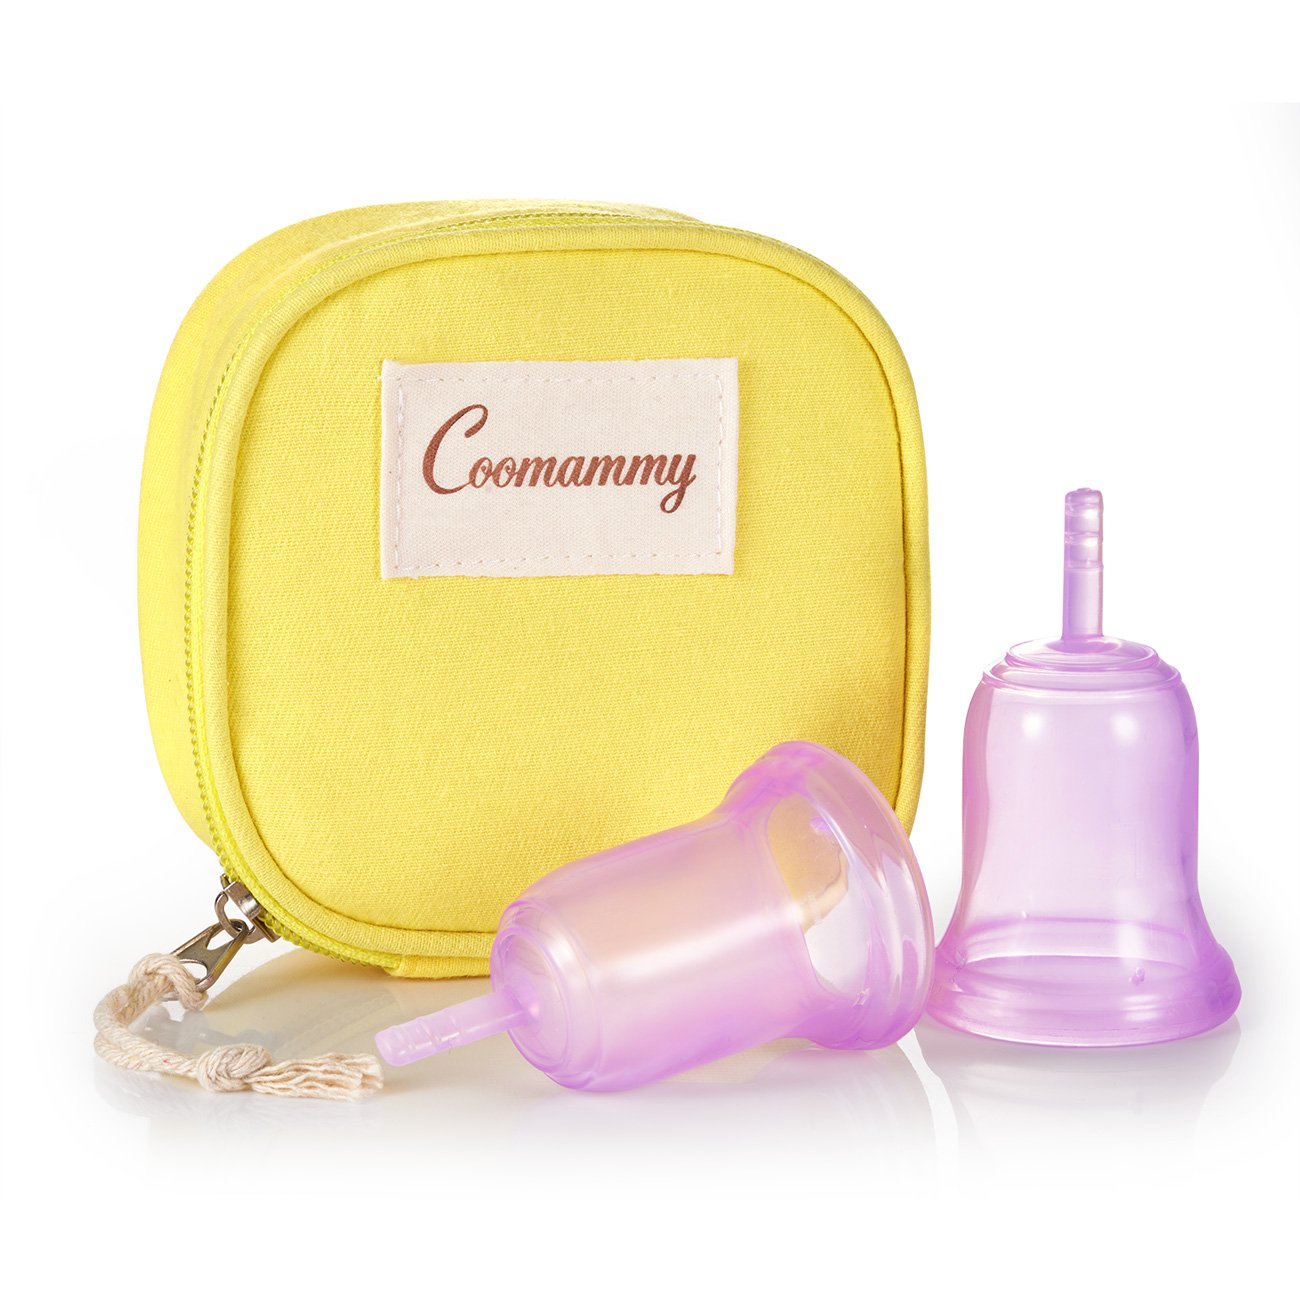 Coomammy Reusable Menstrual Cup with Zipper Bag,Perfect Feminine Hygiene Period Cup,Natural Alternative for Tampons and Sanitary Napkins,Pack of 2 (Large+Small, Purple)